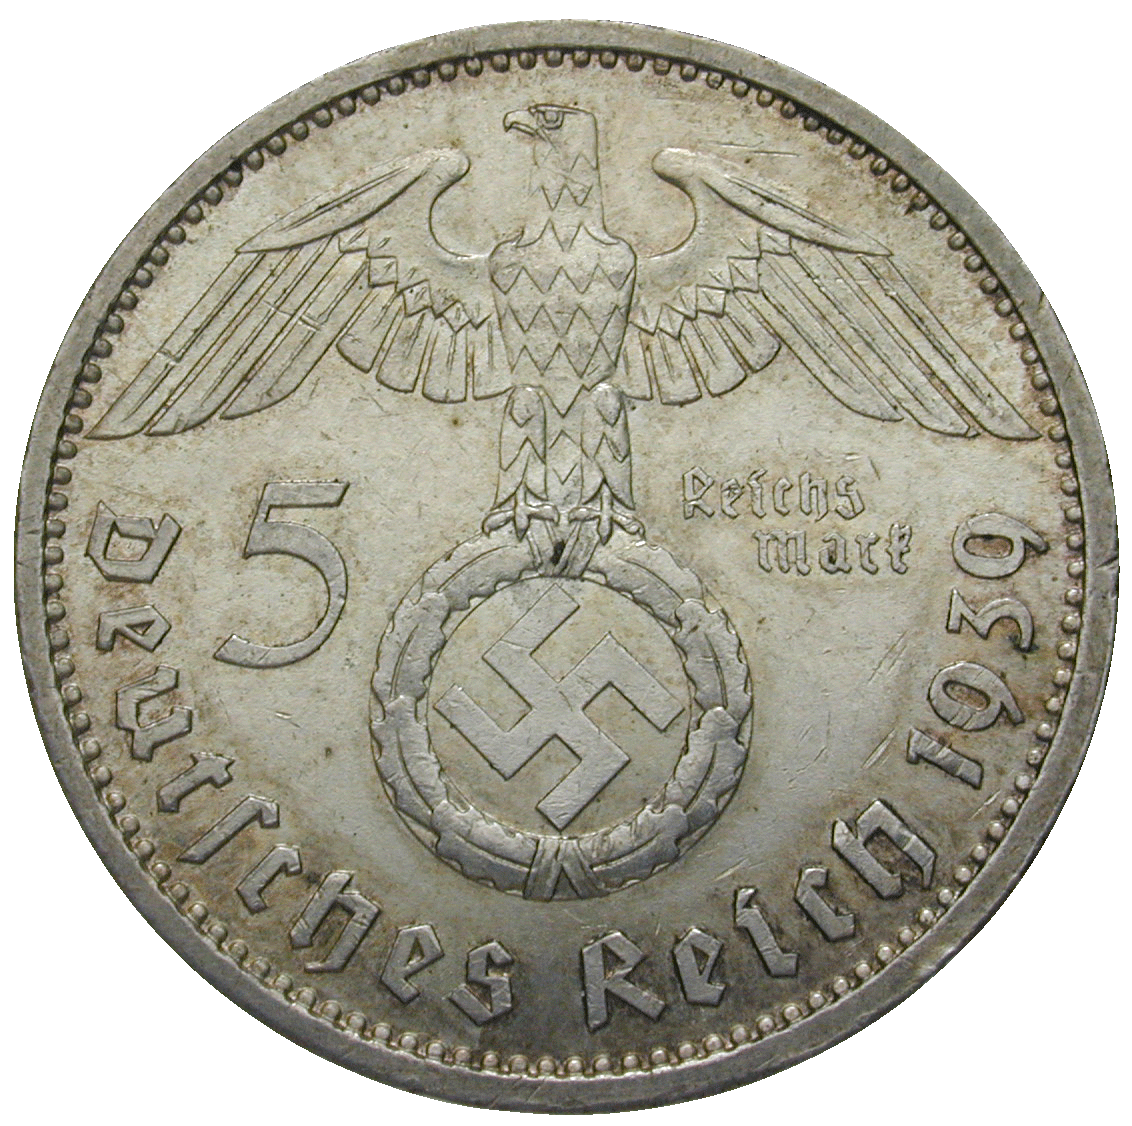 German Third Empire, 5 Reichsmark 1939 (obverse)